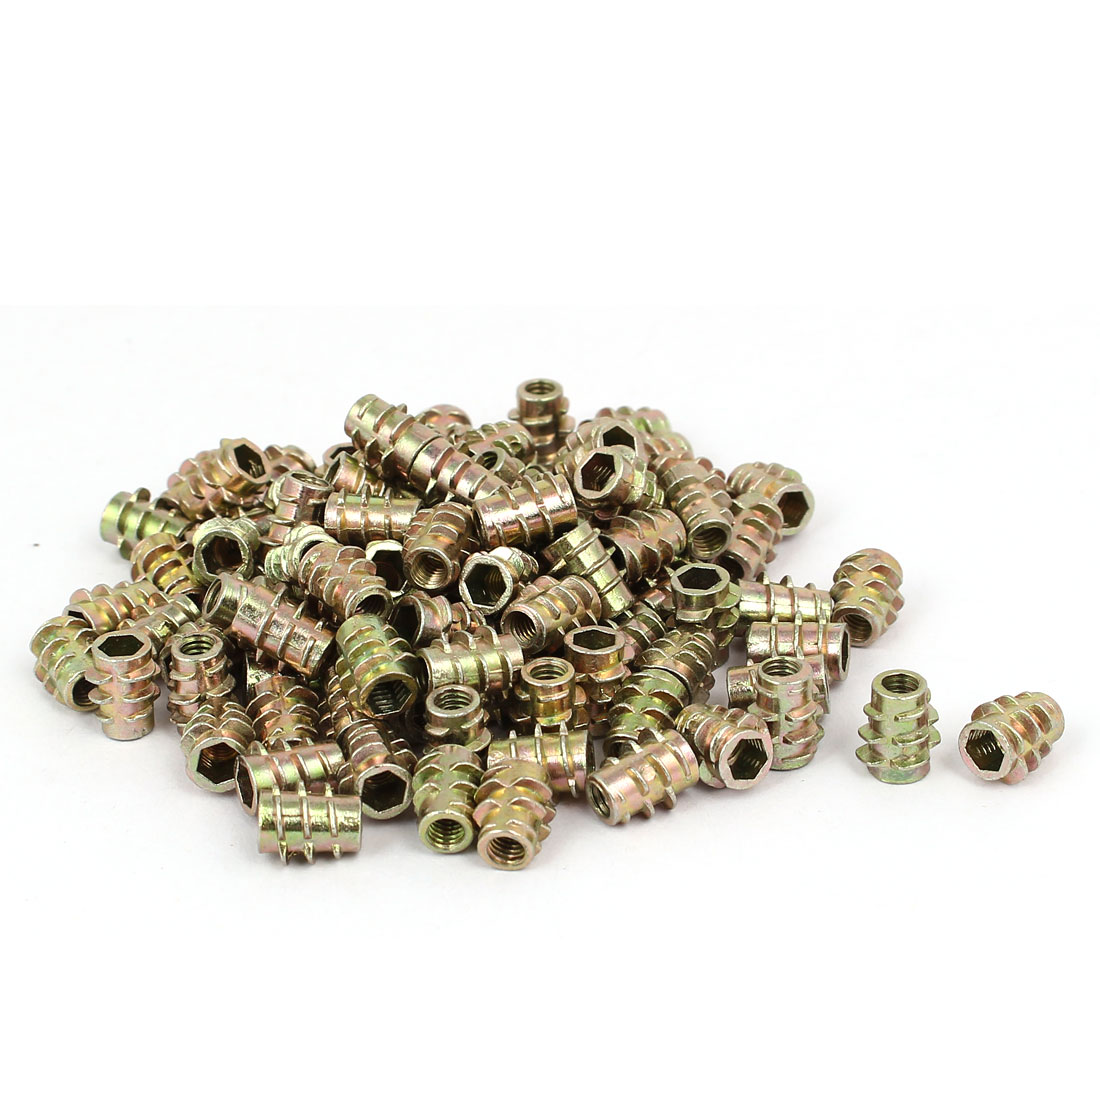 Wood Furniture Zinc Alloy Hex Socket Insert Screws E-Nuts M4x10mm 100pcs